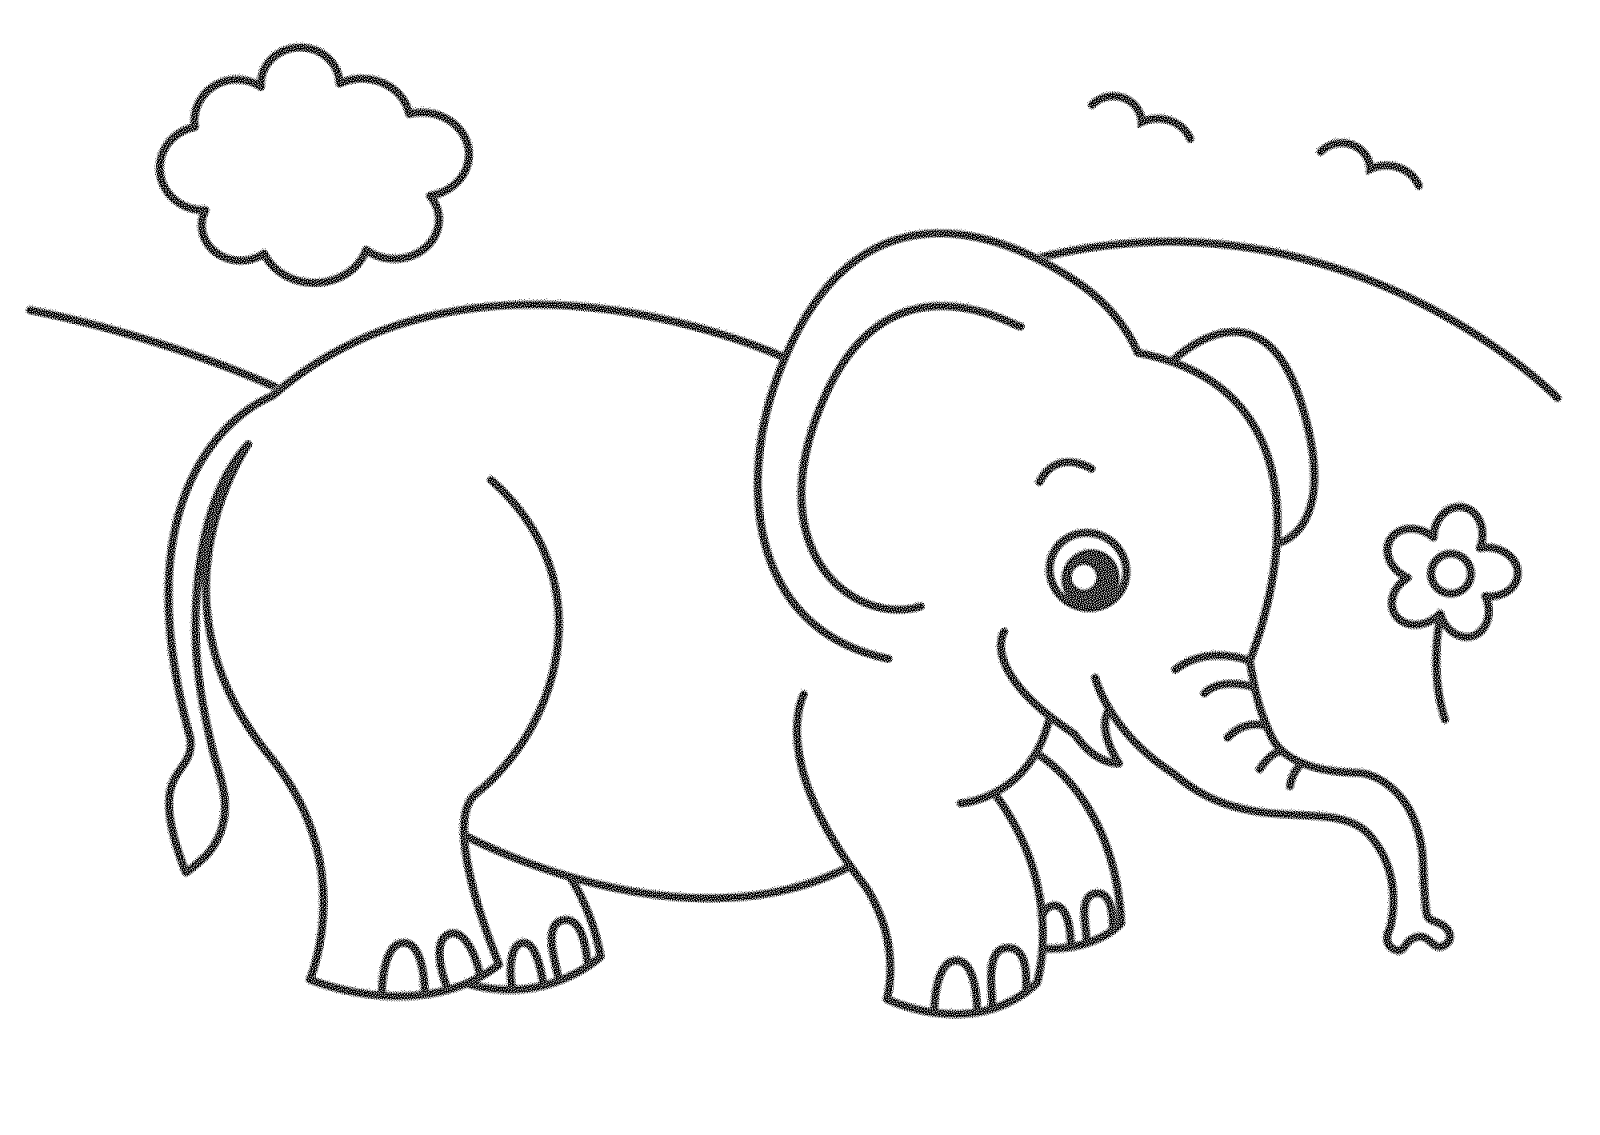 indian elephant coloring pages - Coloring Pages Indian Elephants